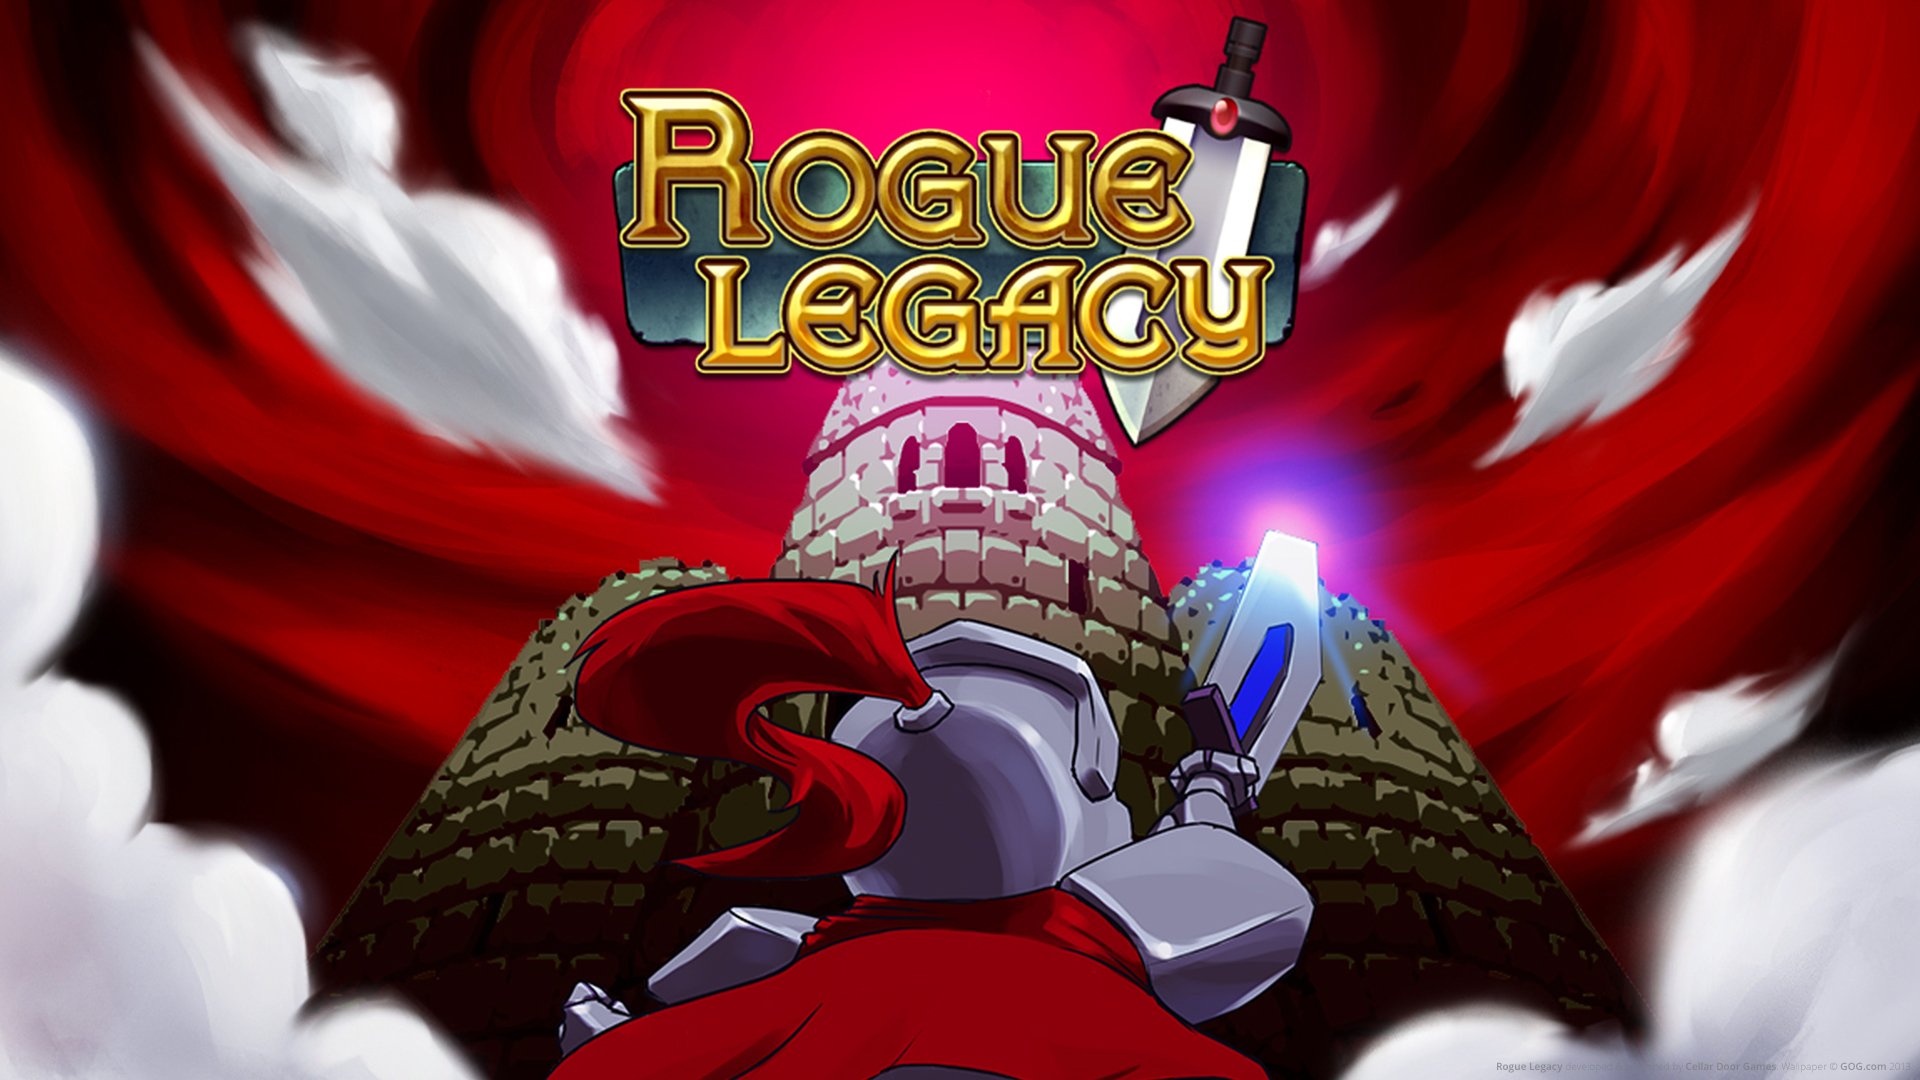 Rogue Legacy wallpapers, Video Game, HQ Rogue Legacy pictures | 4K Wallpapers 2019